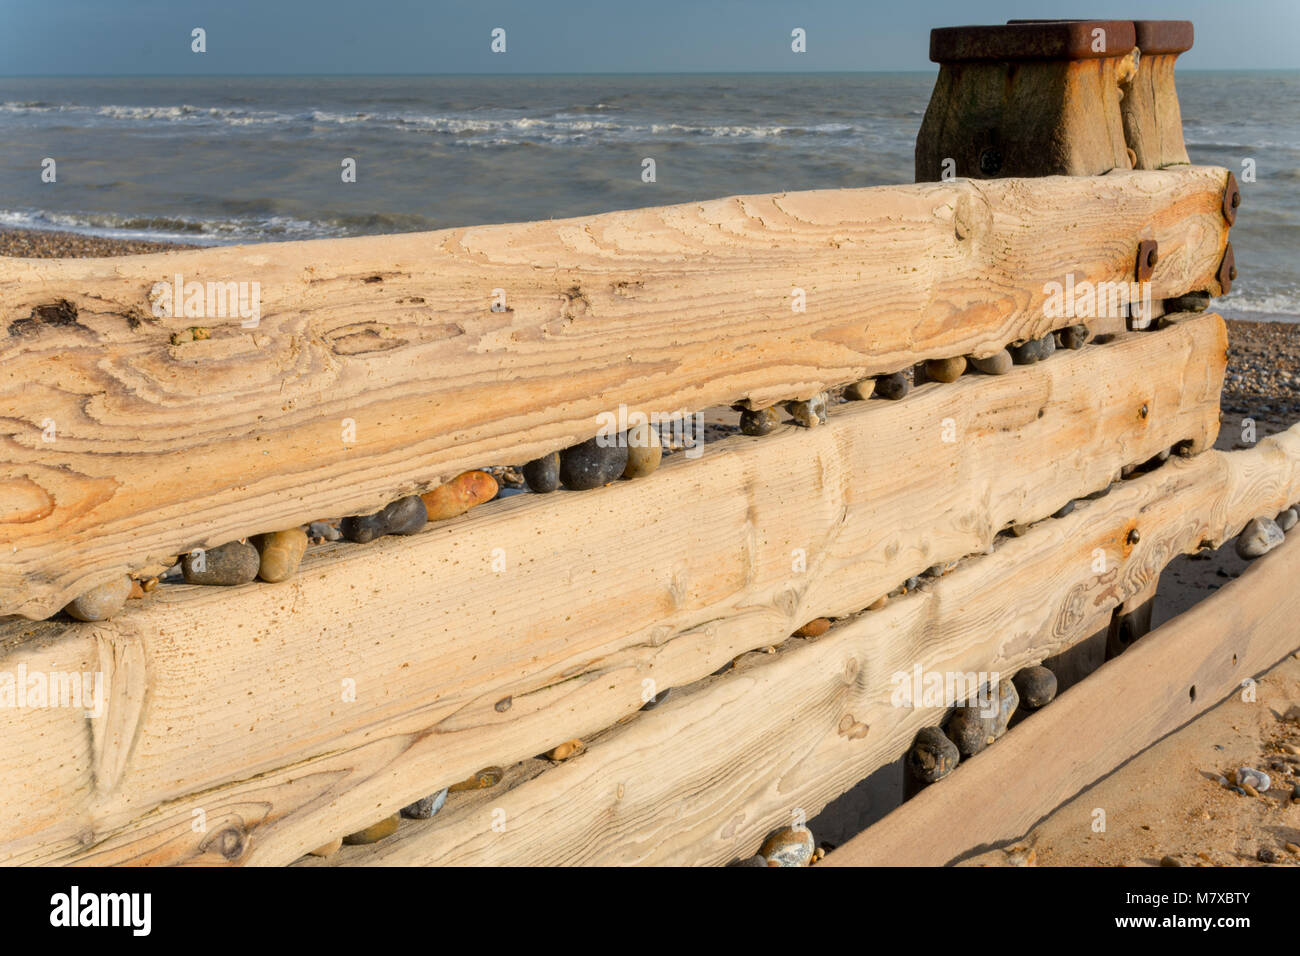 Pine groyne with pebbles jammed in the gaps by the power of the waves, on the beach at Bexhill-on-Sea, East Sussex, - Stock Image